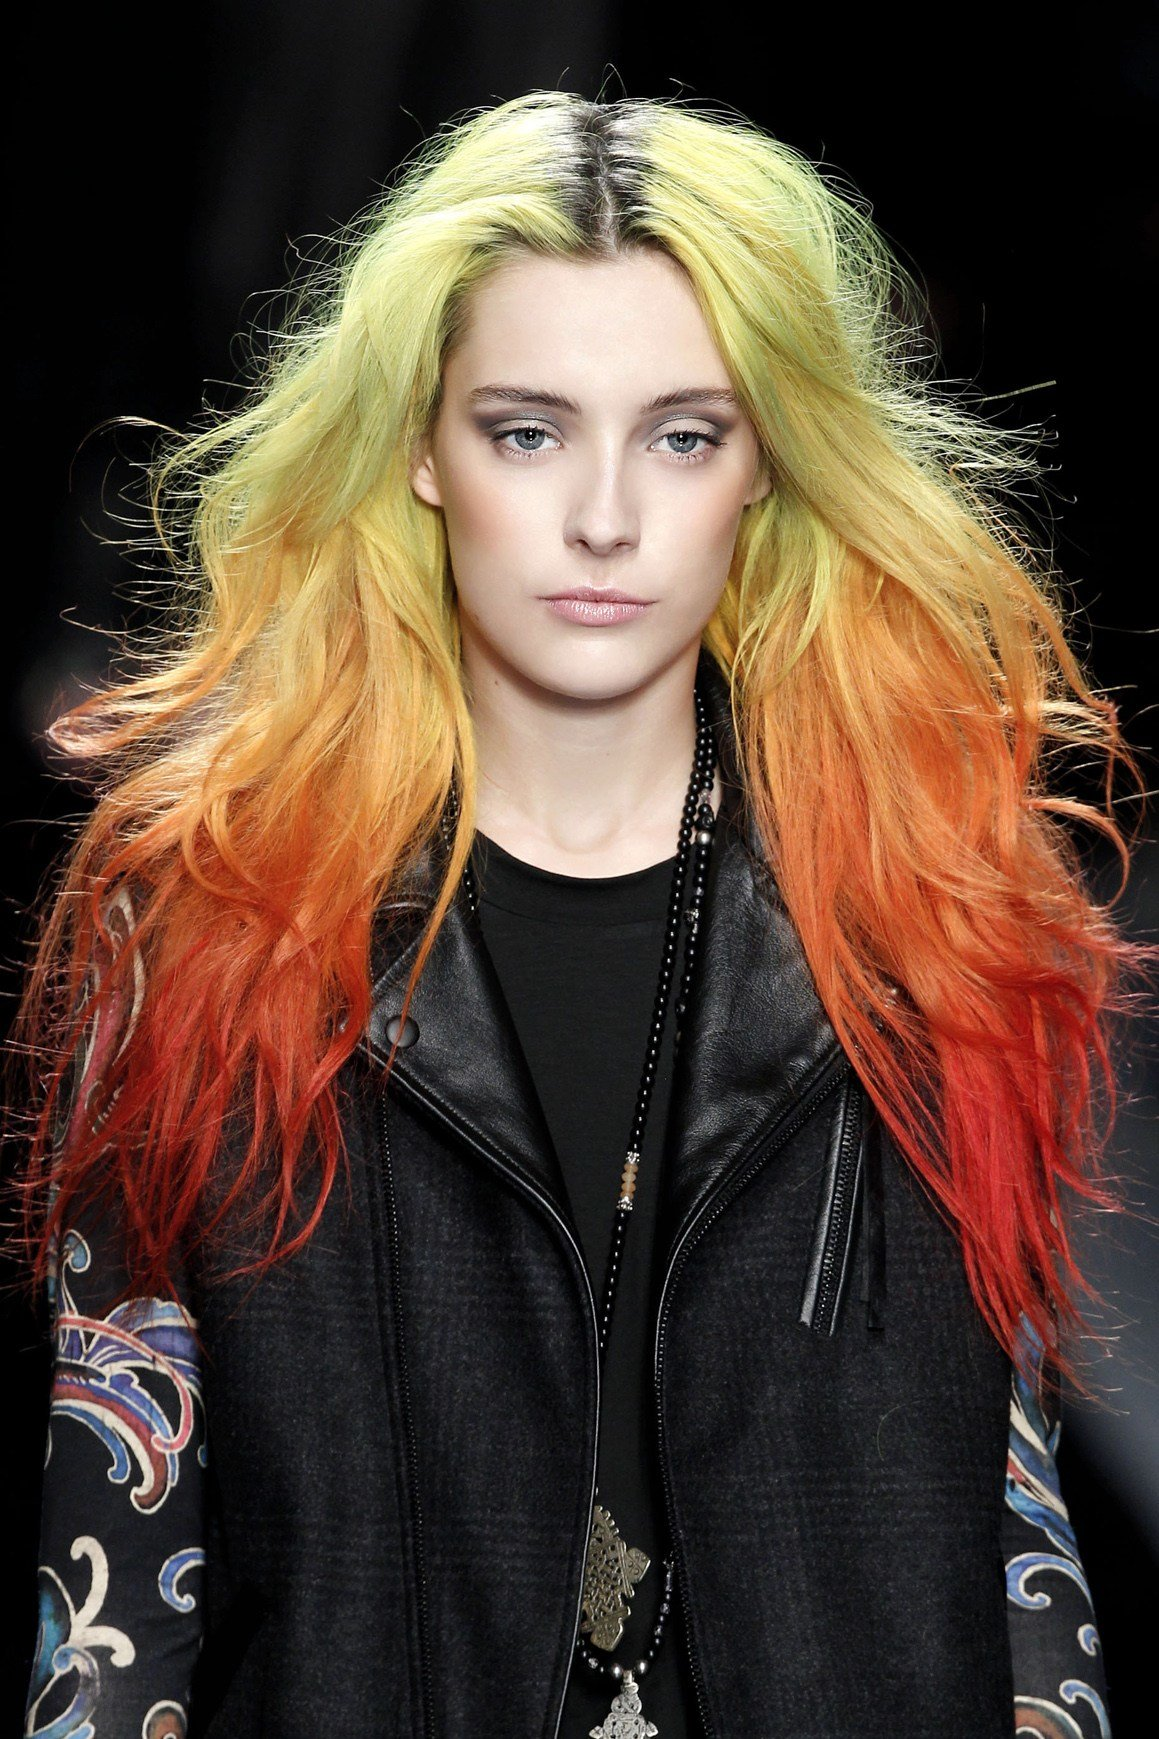 New Are Hair Dye Chemicals Harmful For Your Health Stylecaster Ideas With Pictures